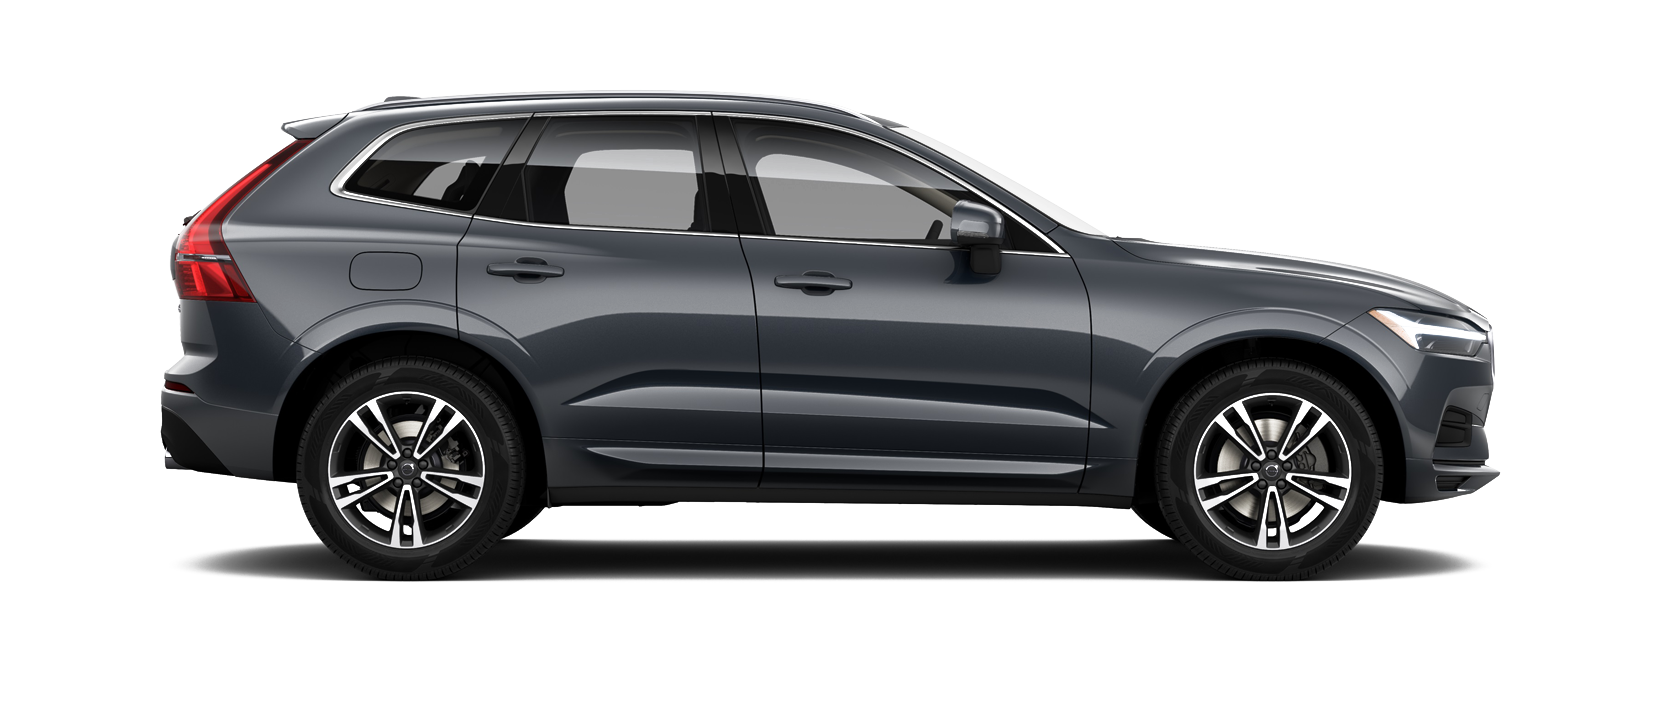 2019 Volvo XC60 T6 AWD Momentum shown